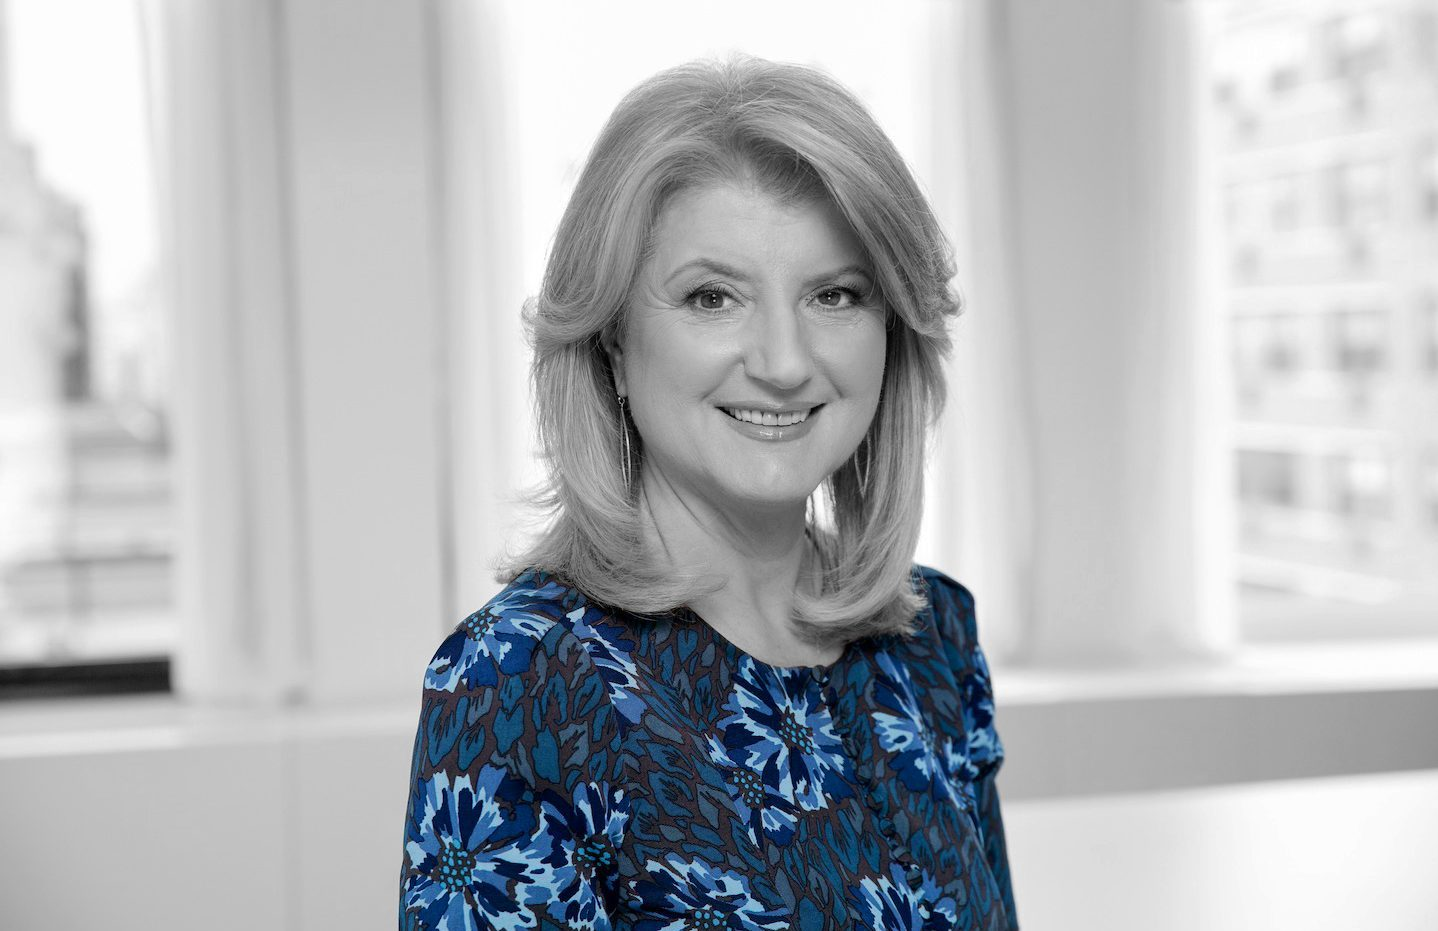 ARIANNA'S THREAD. The rules of life and leadership of the founder of the media portal The Huffington Post Arianna Huffington